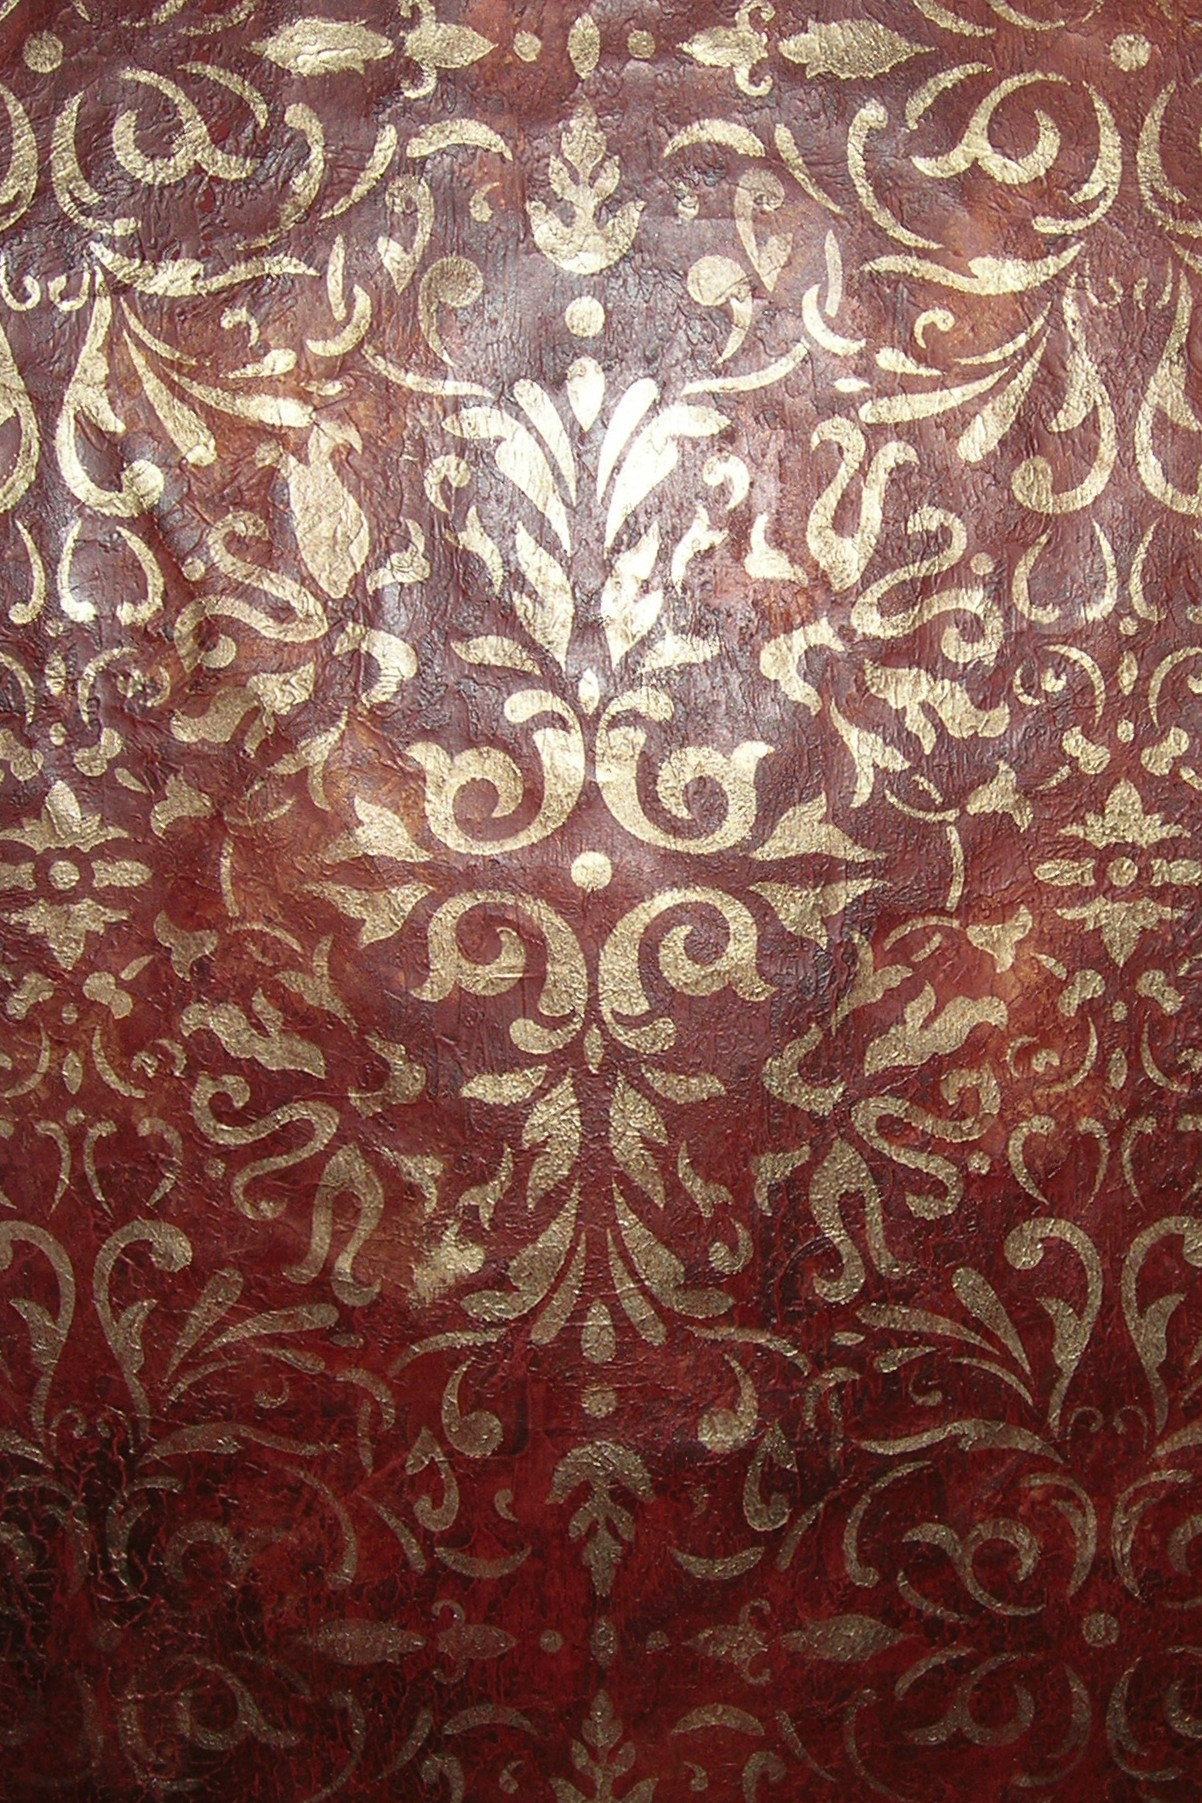 red leather texture allover stencil gold wallovers sarabeth's scroll faux finish decorative paint raleigh